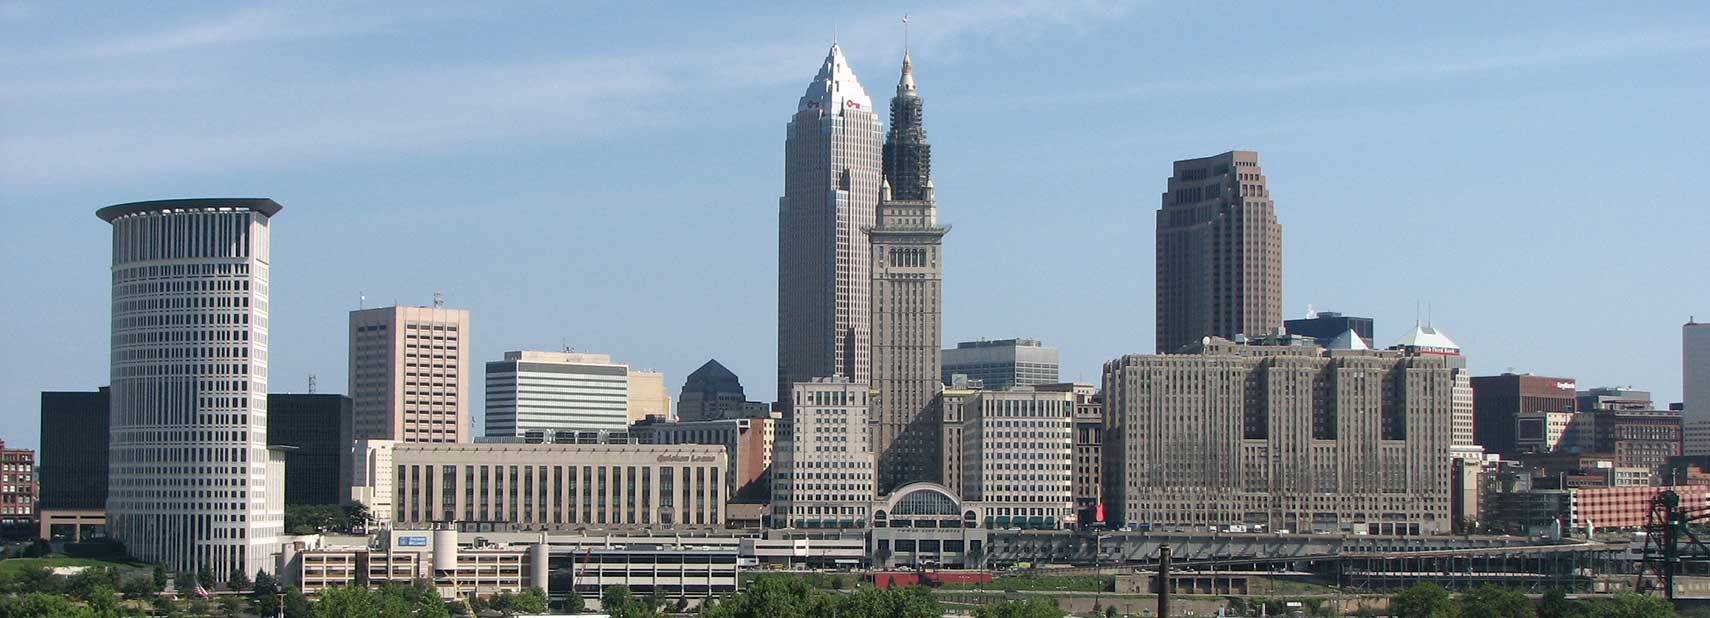 Skyline of Downtown Cleveland  Ohio. Google Map of Cleveland  Ohio  USA   Nations Online Project